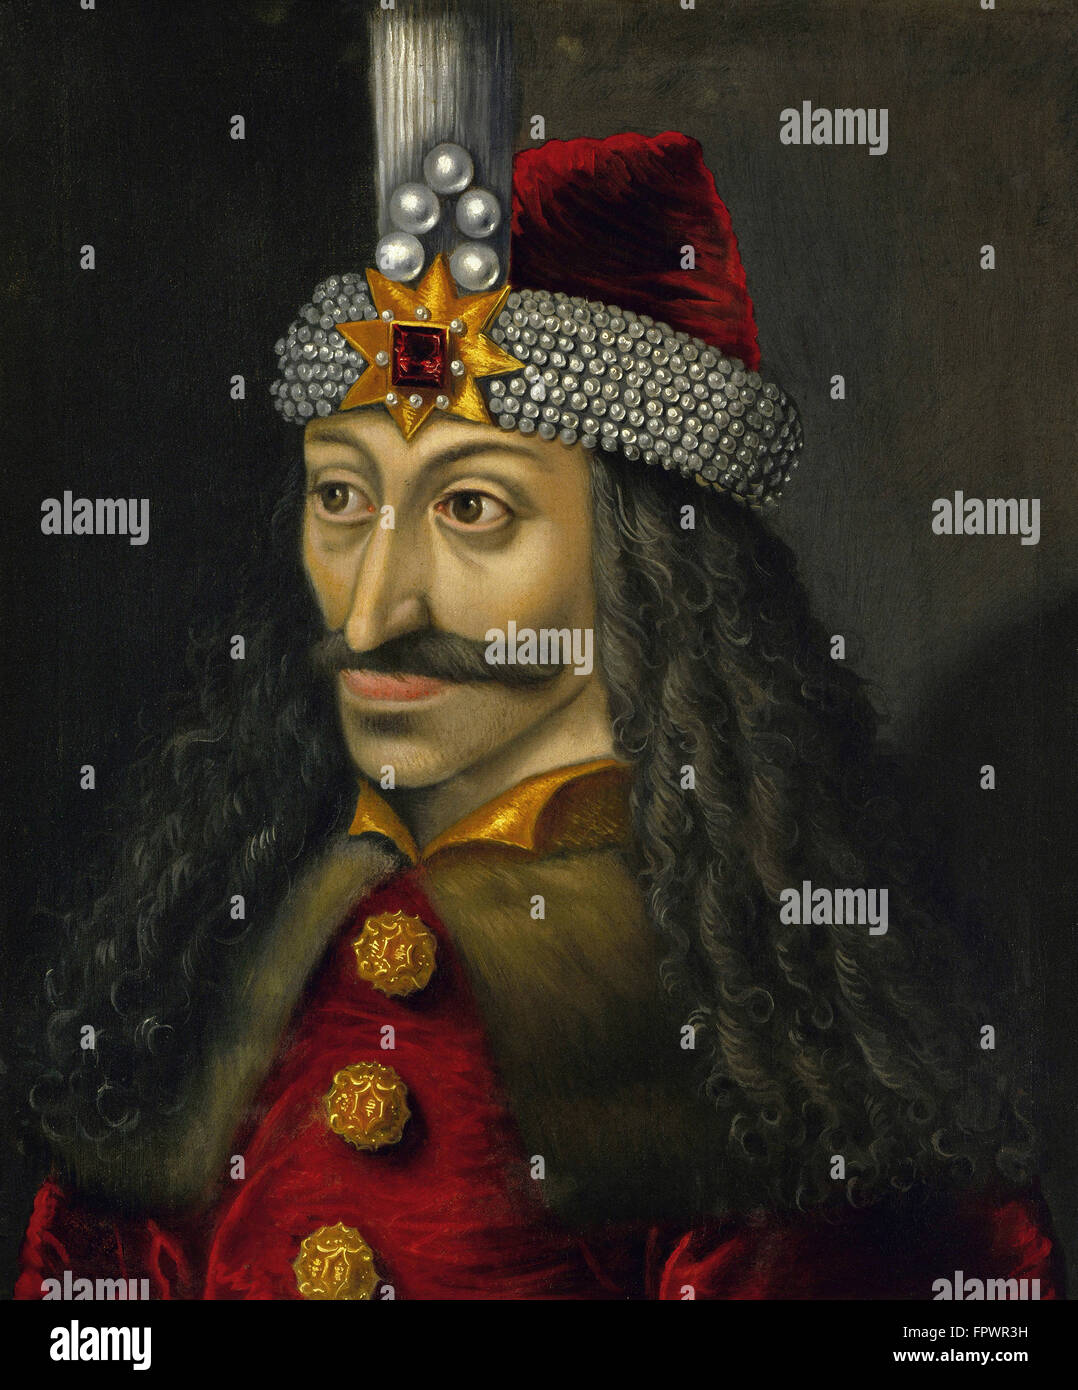 Vintage European history painting of Vlad the Impaler, Prince of Wallachia. - Stock Image